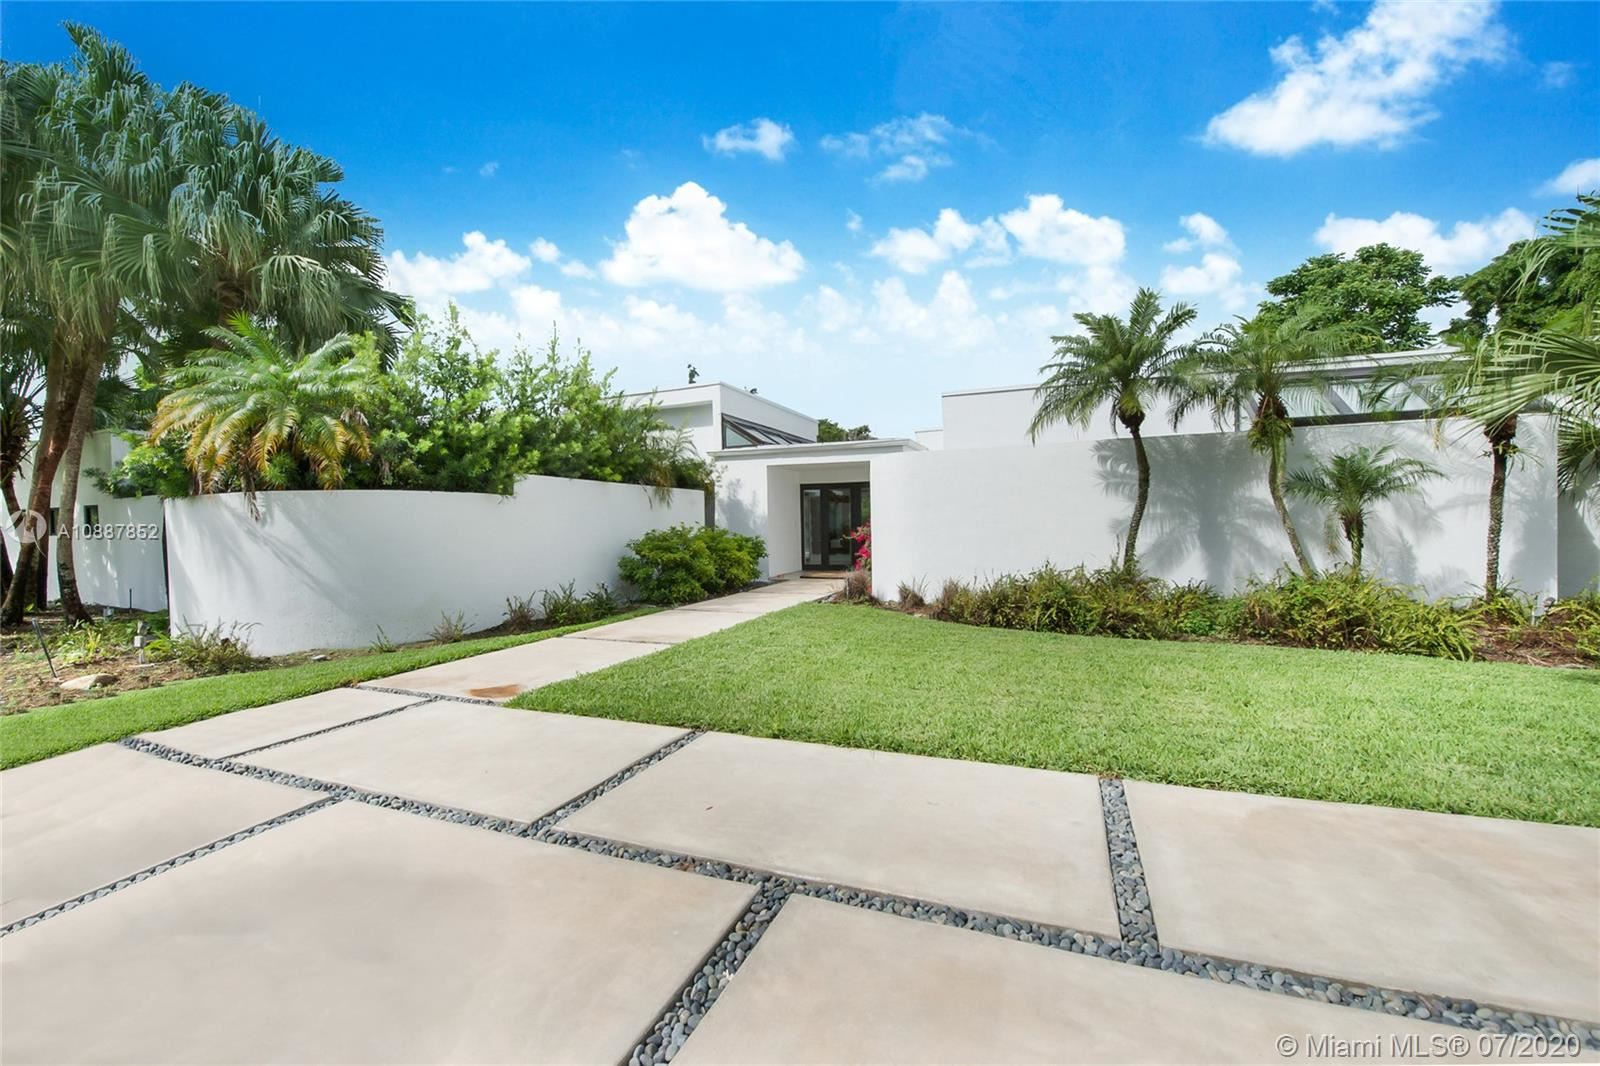 10300 SW 64th Ave, Pinecrest, FL 33156 - #: A10887852